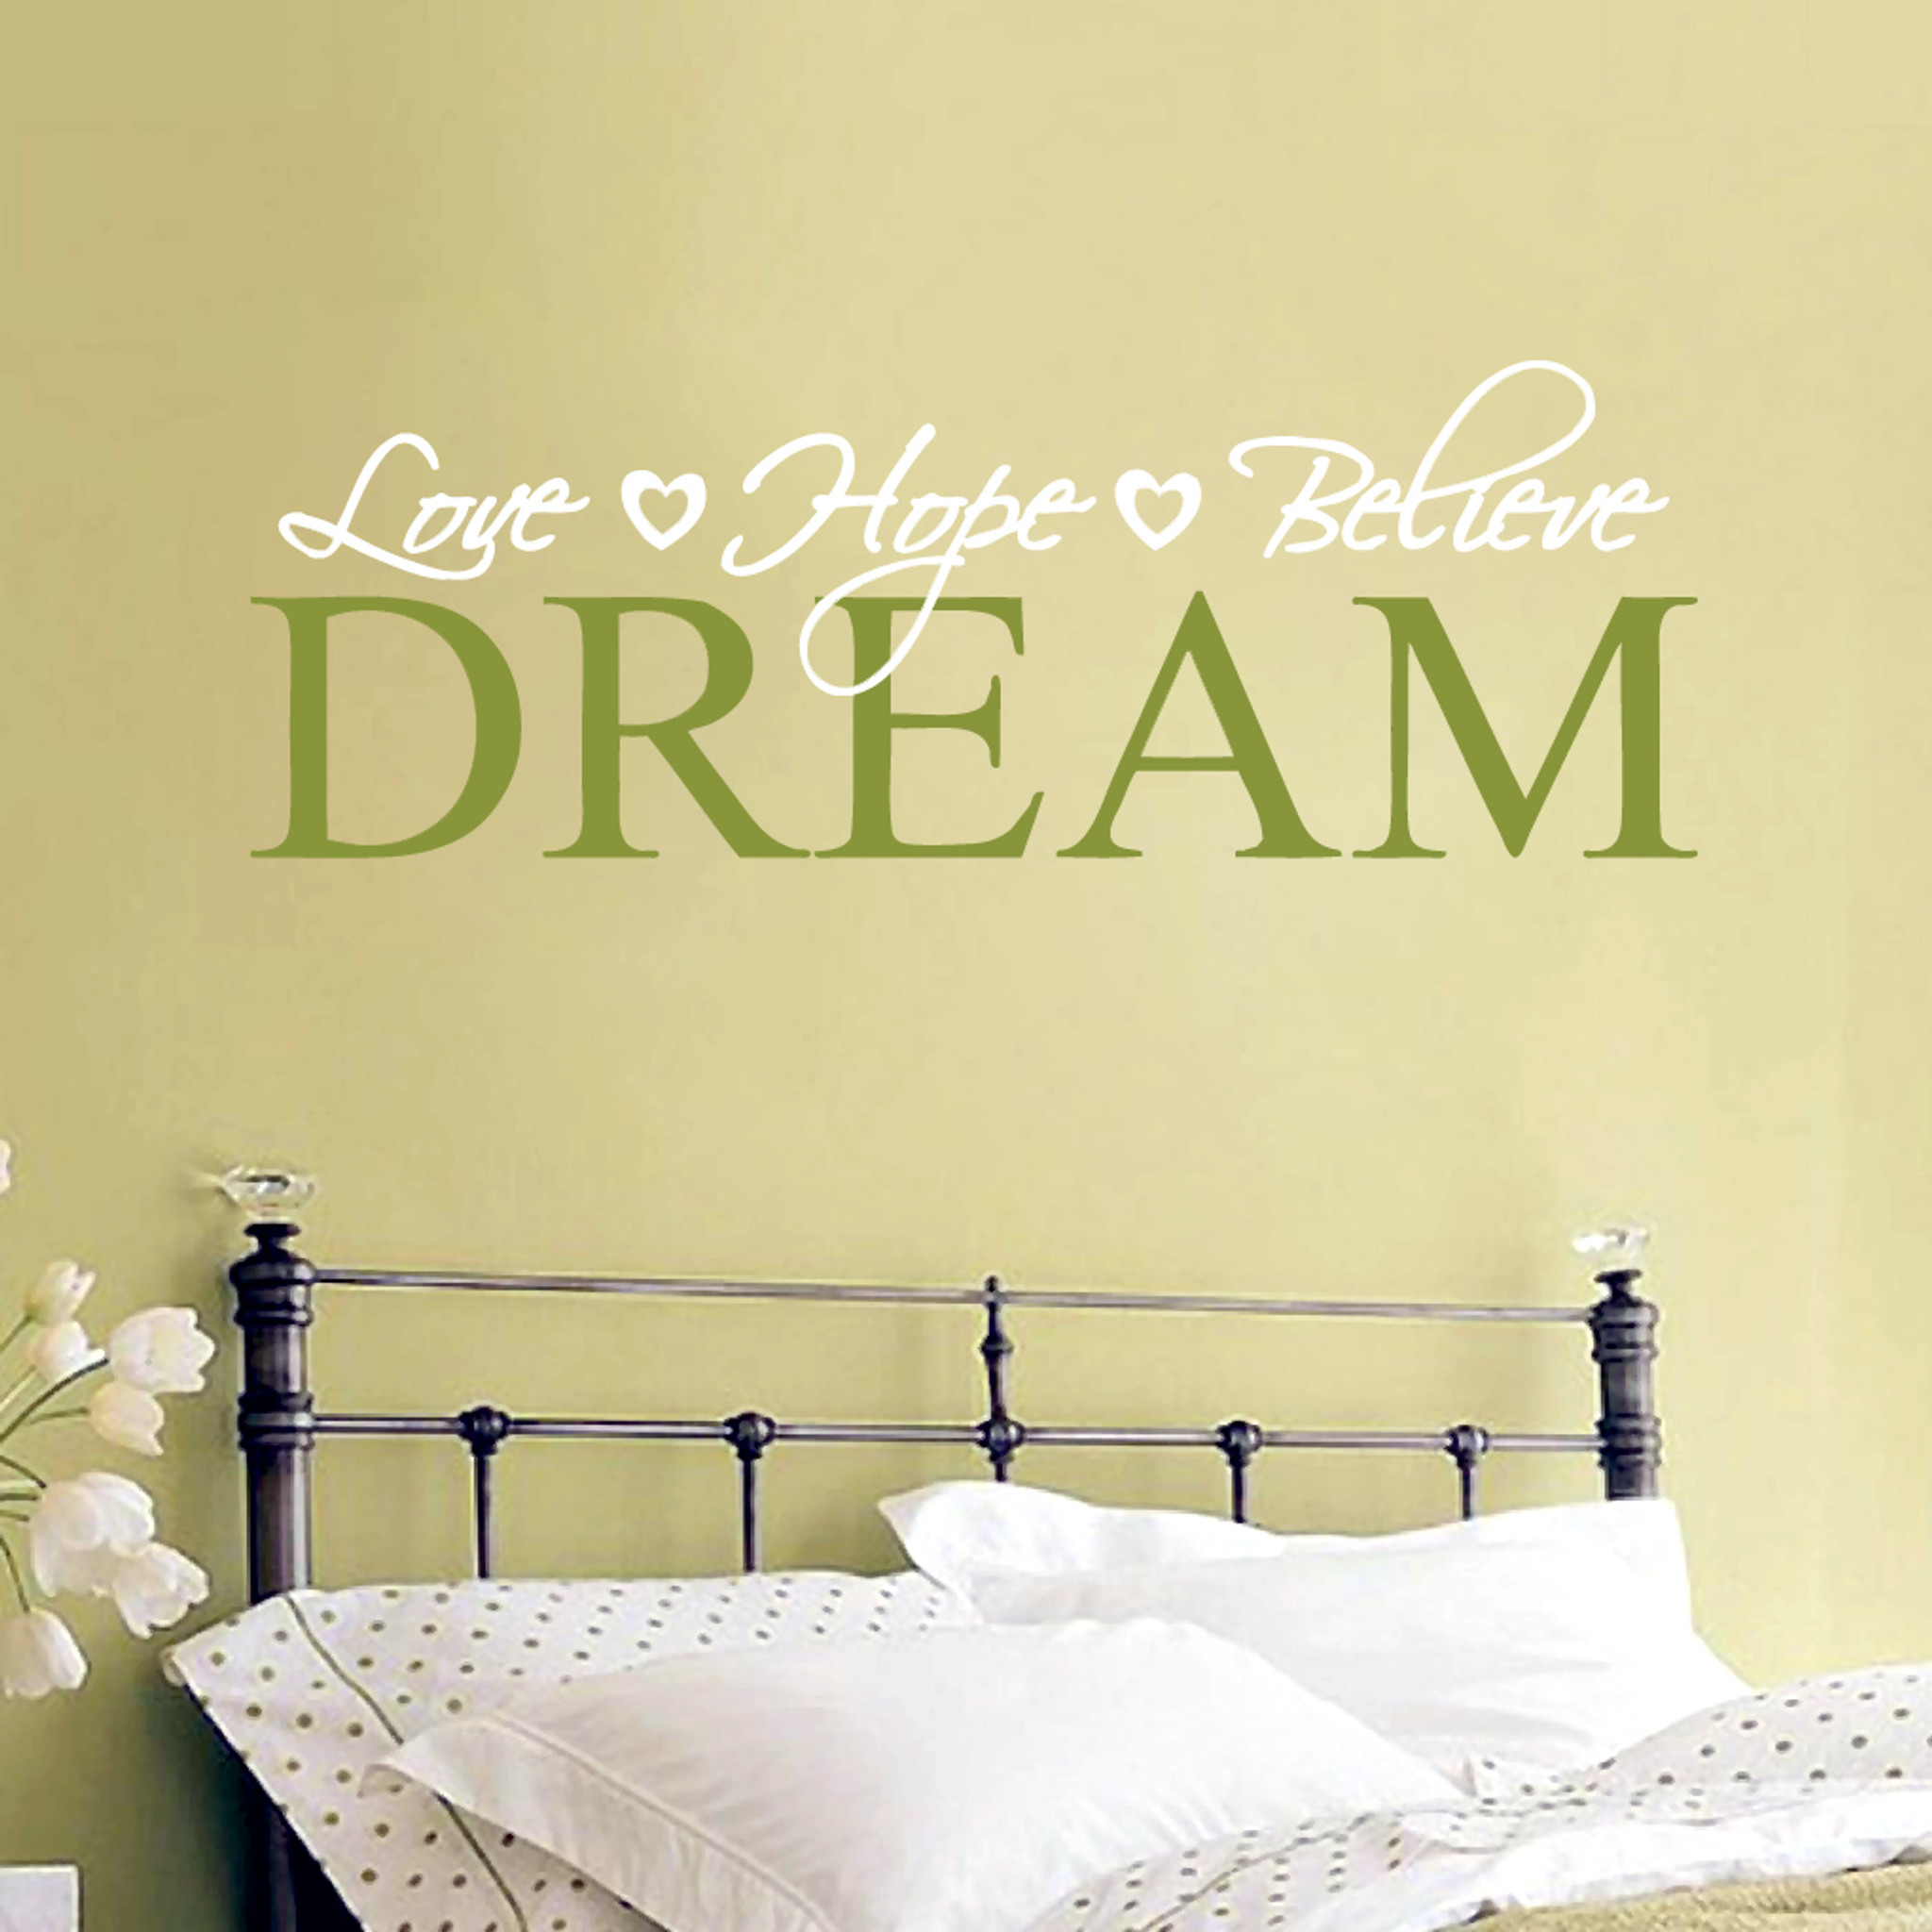 Love Hope Believe Dream Wall Decals and Wall Stickers  sc 1 st  Sweetums Signatures & Love Hope Believe Dream Wall Decals Home Décor Wall Decals